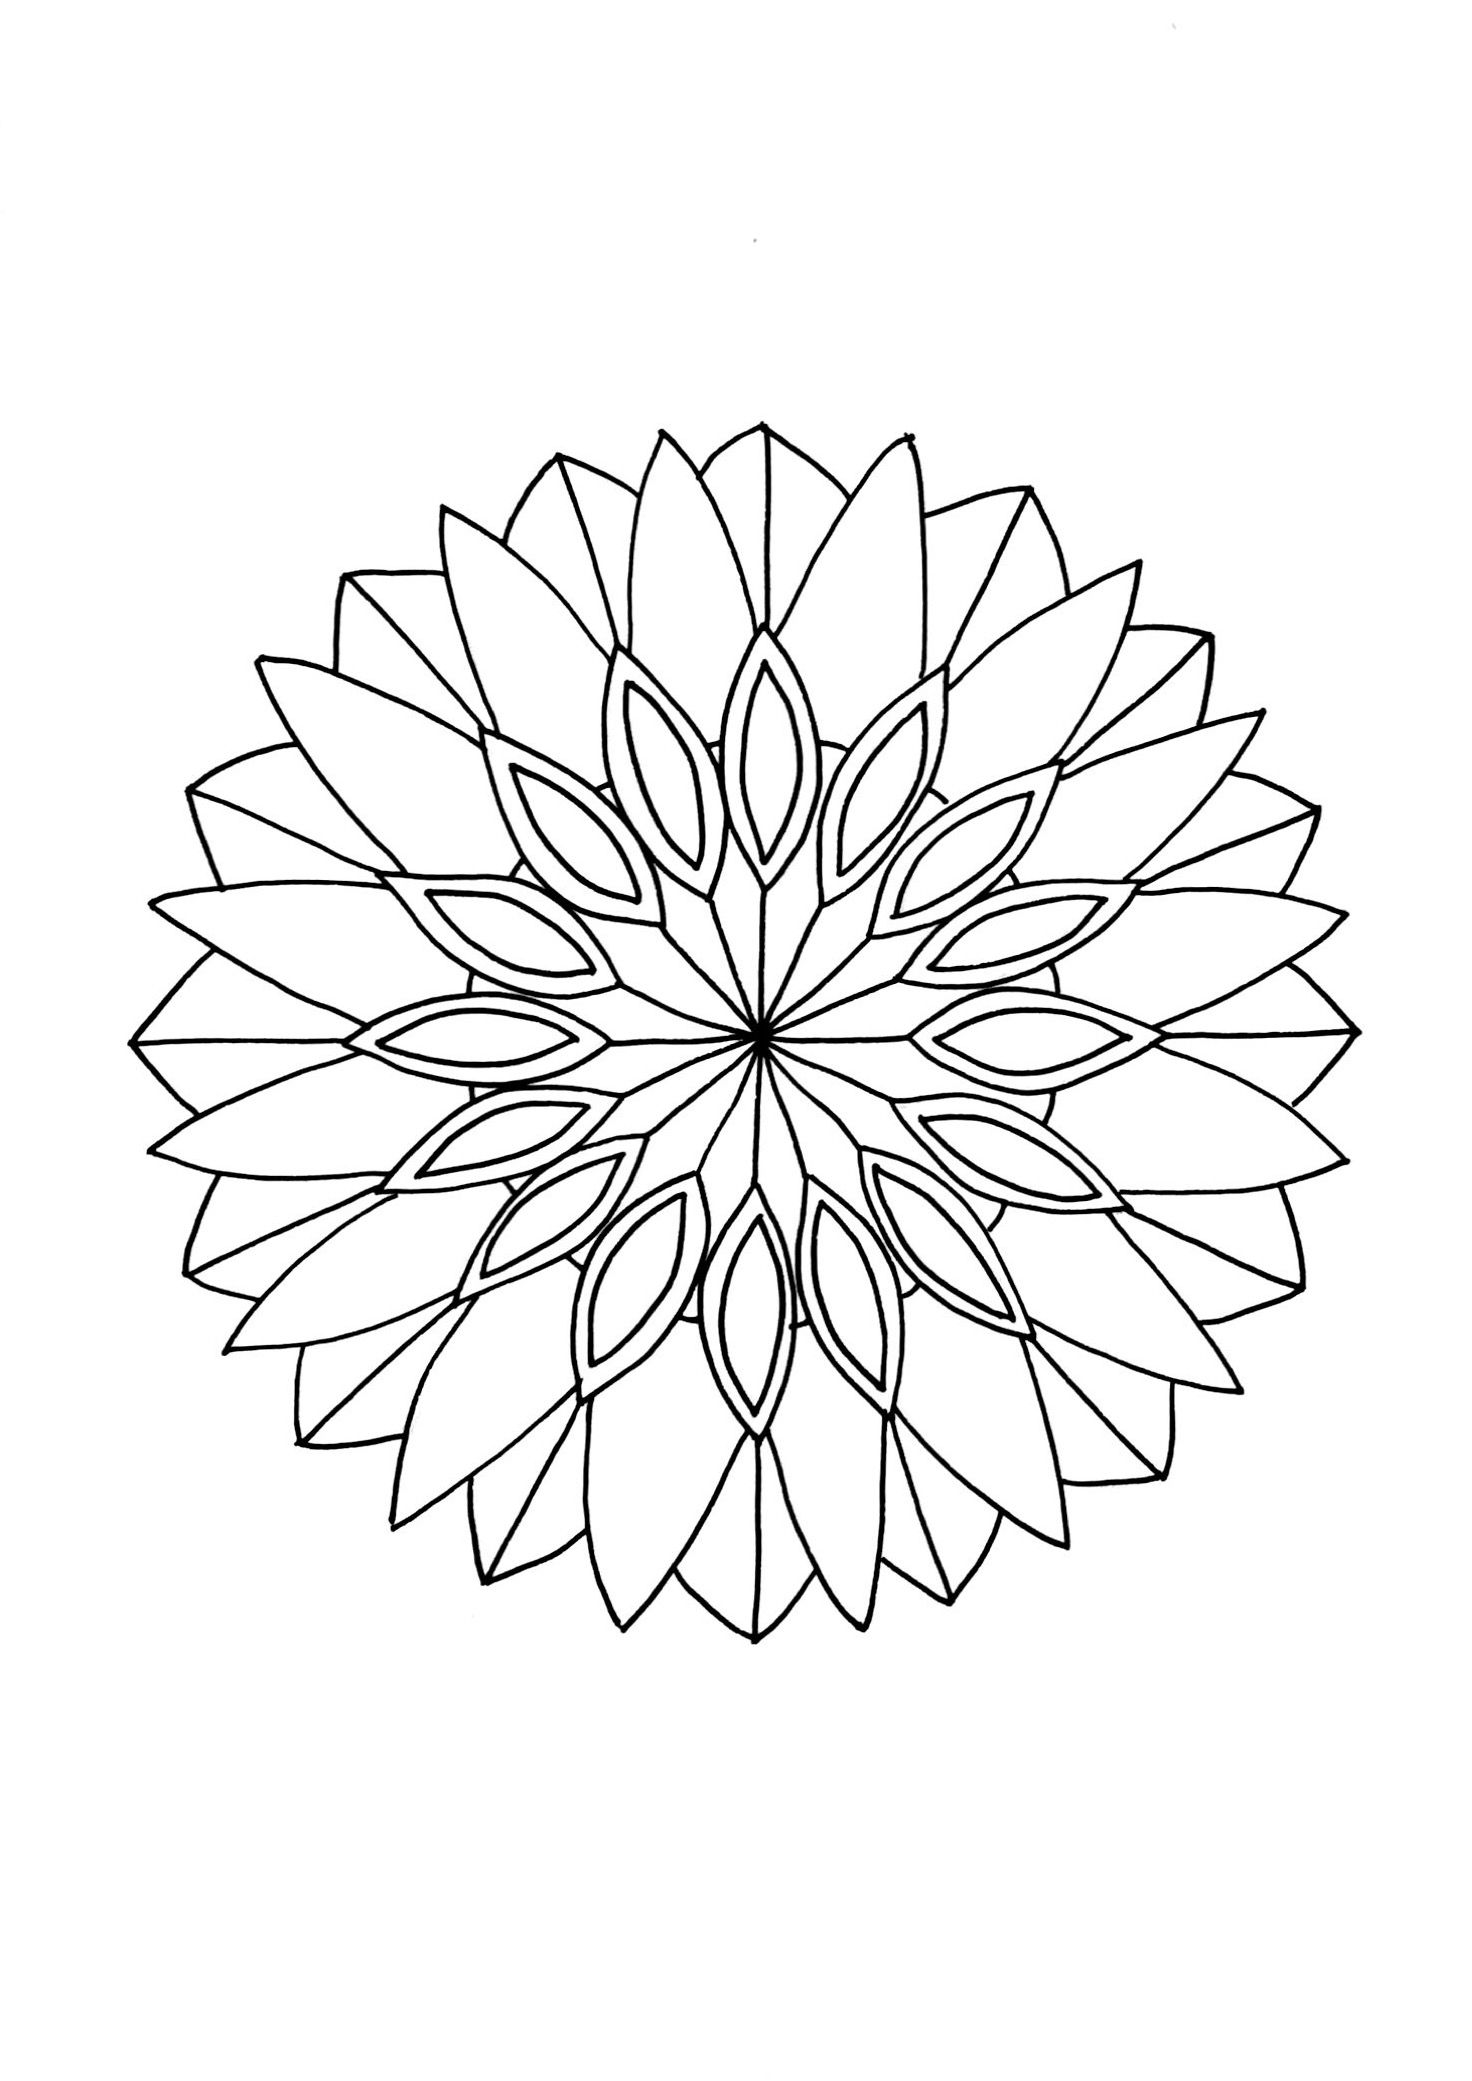 mandala hand coloring pages pin by coloringsworldcom on mandala coloring pages pages coloring hand mandala